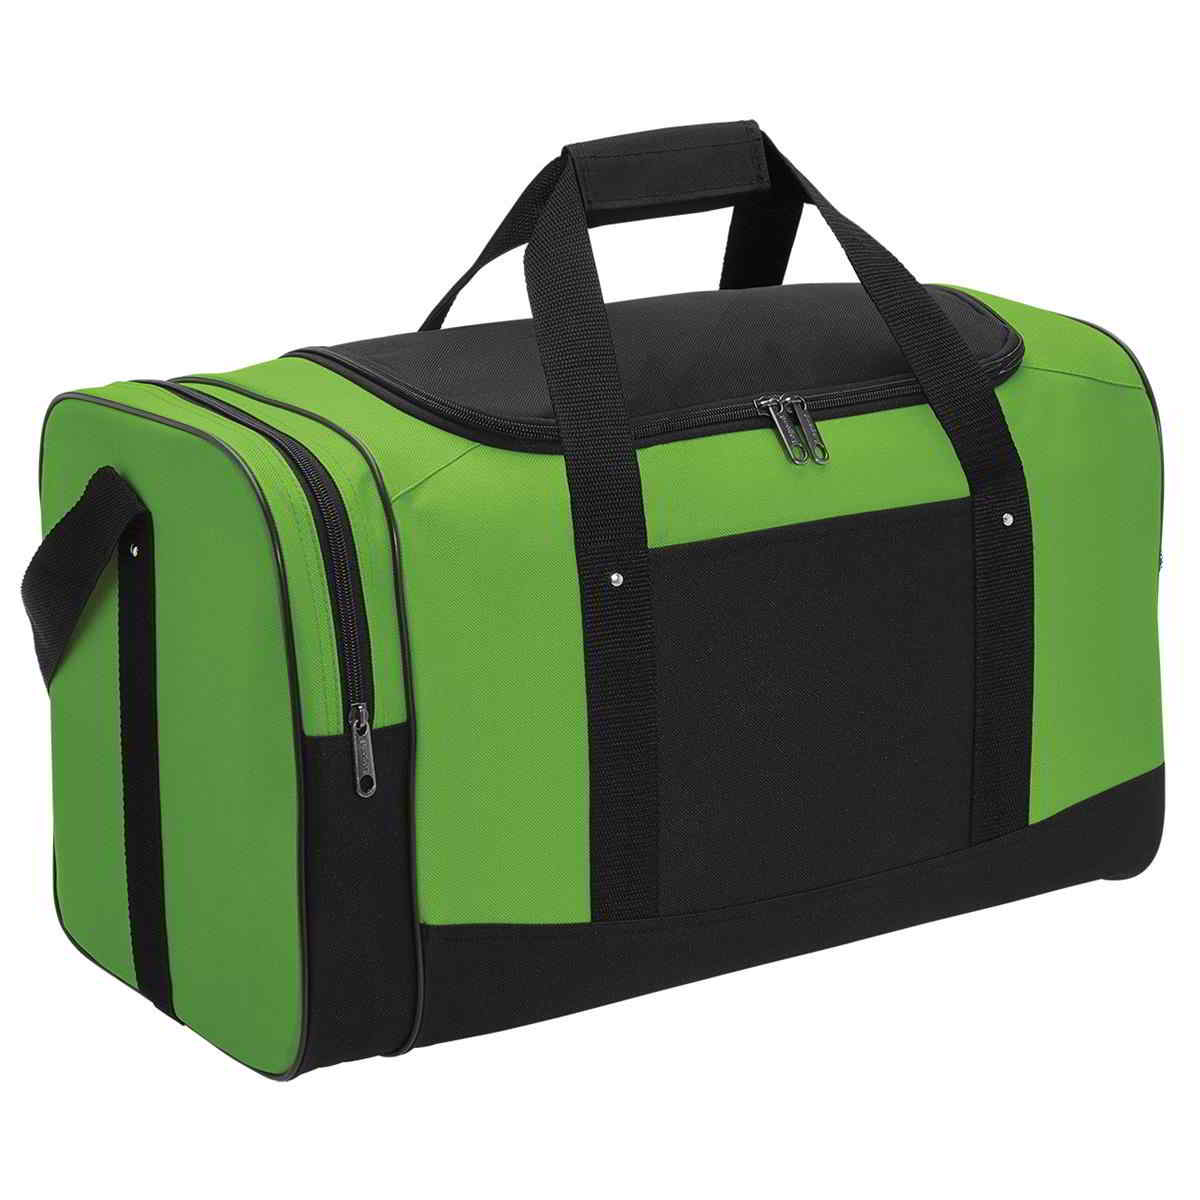 1222 Spark Sports bag Lime / Black